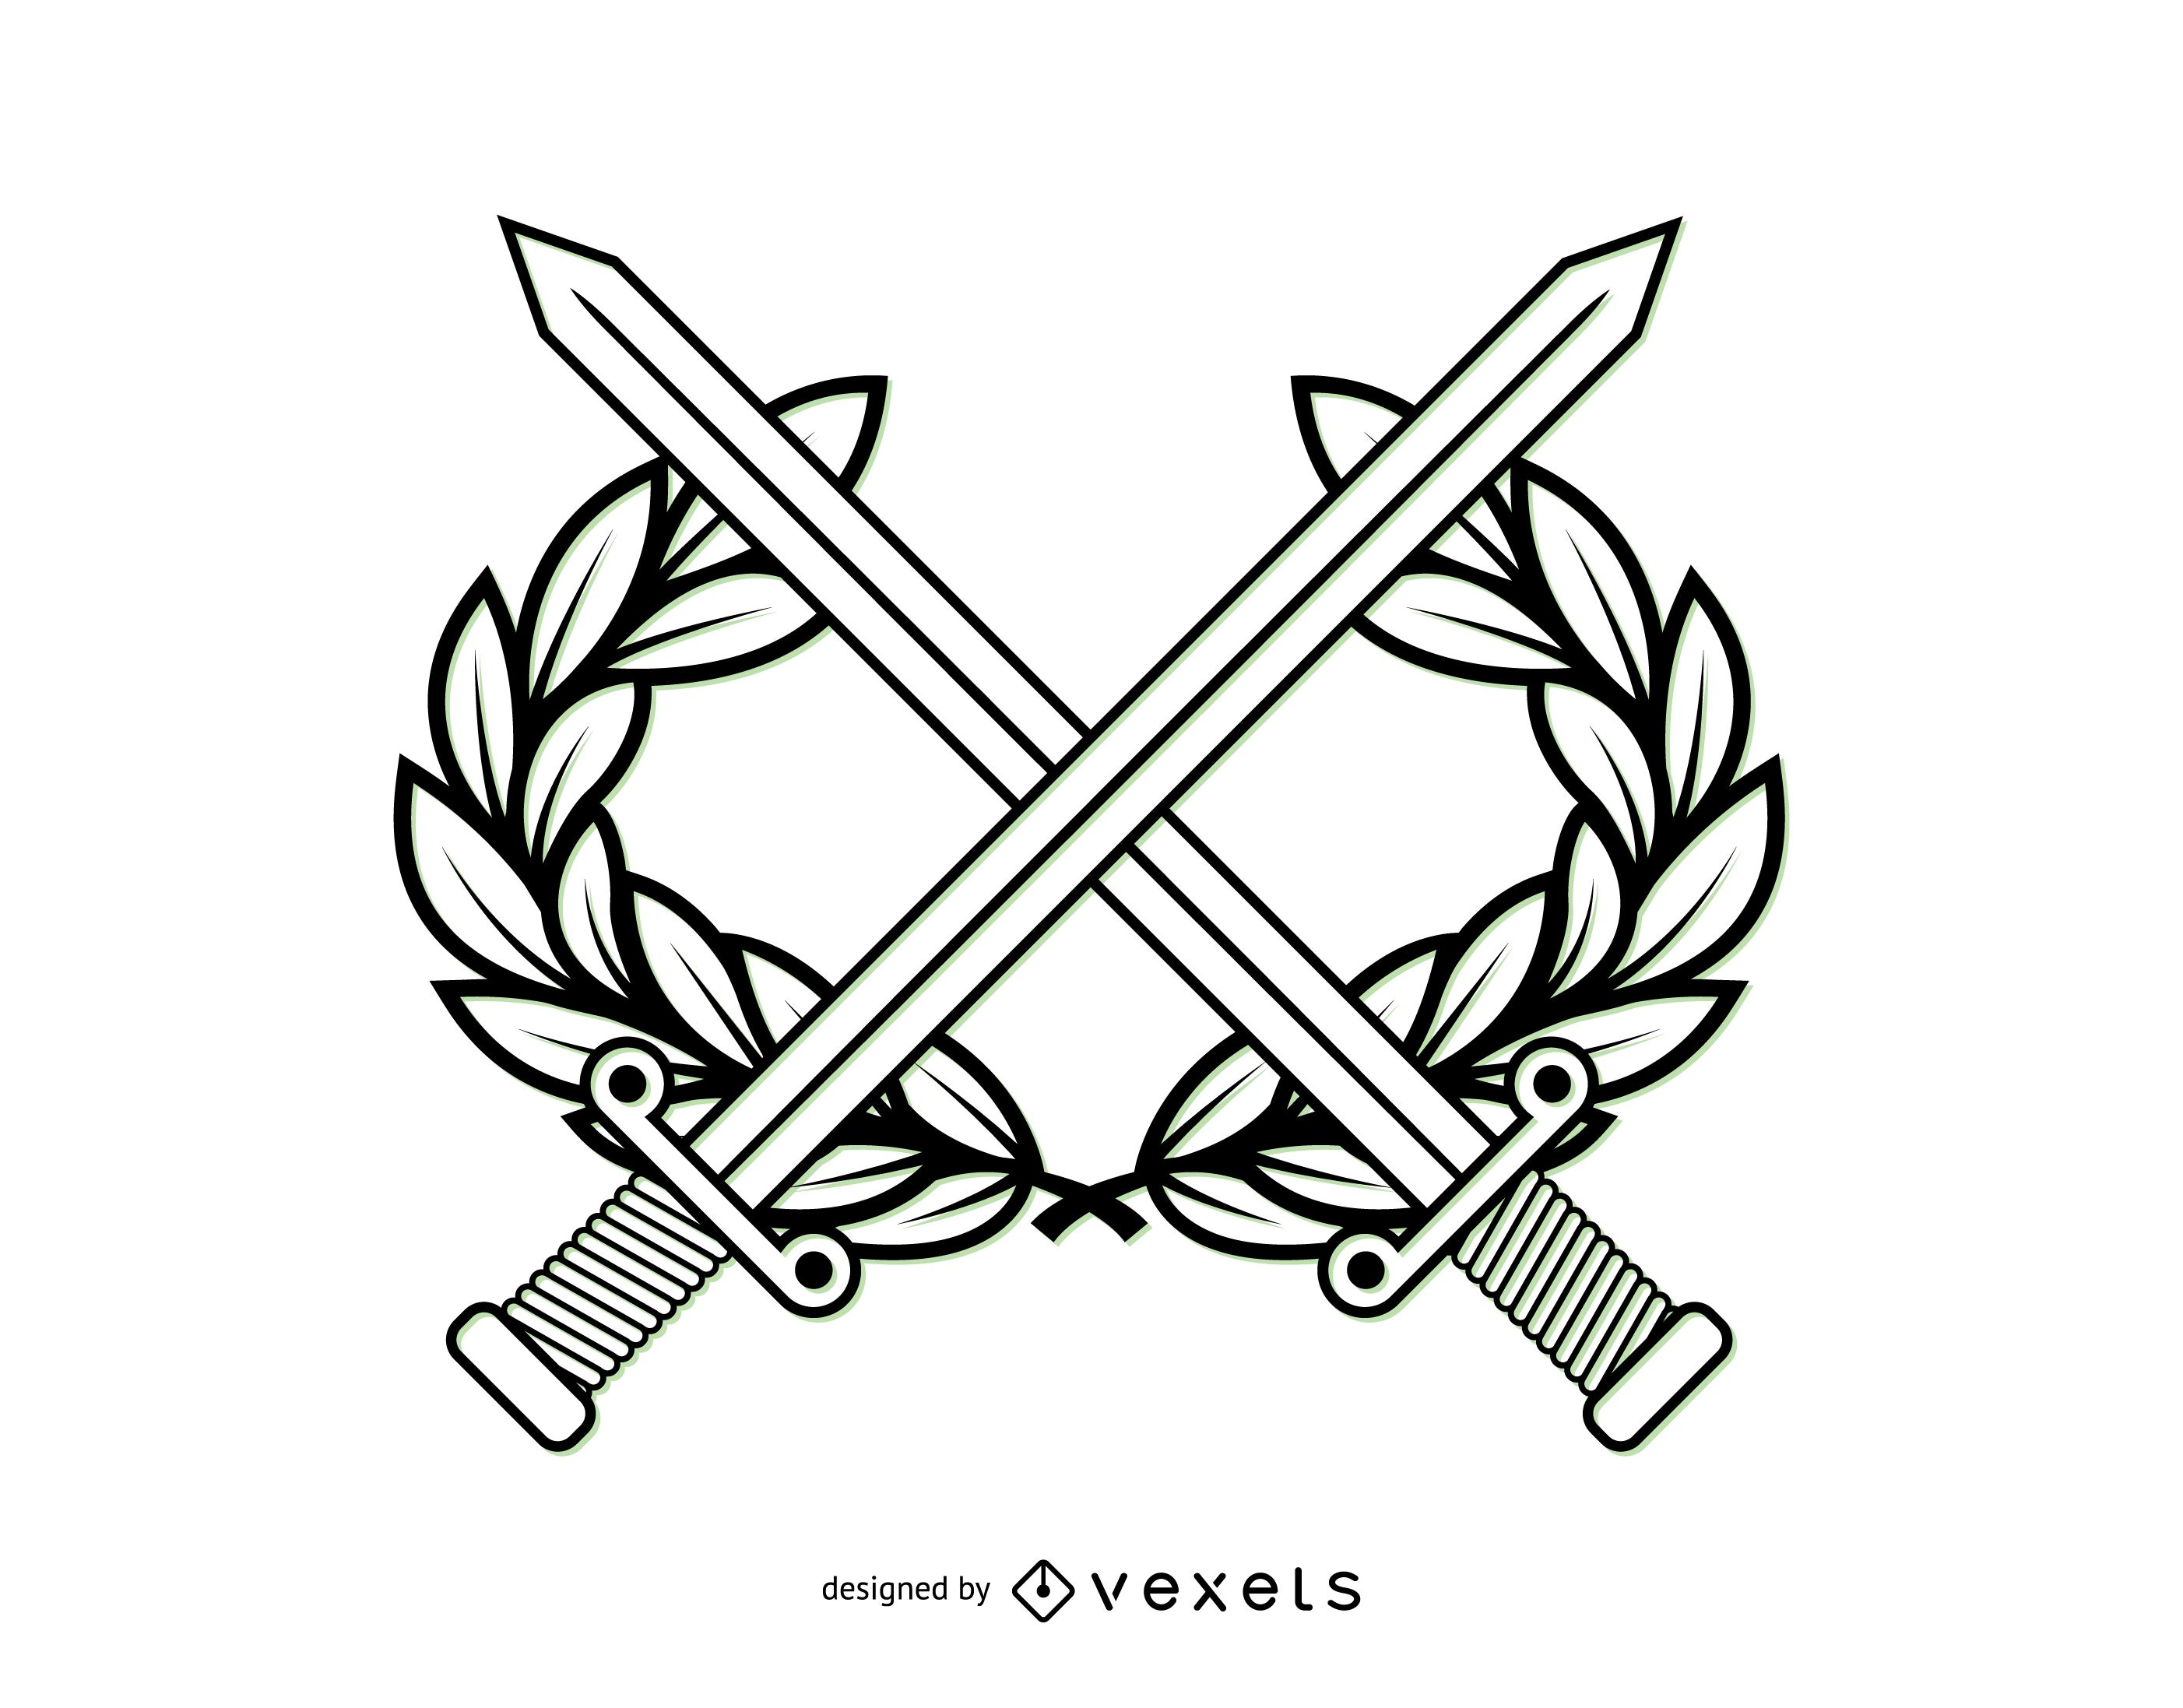 Line Art Military Coat of Arms